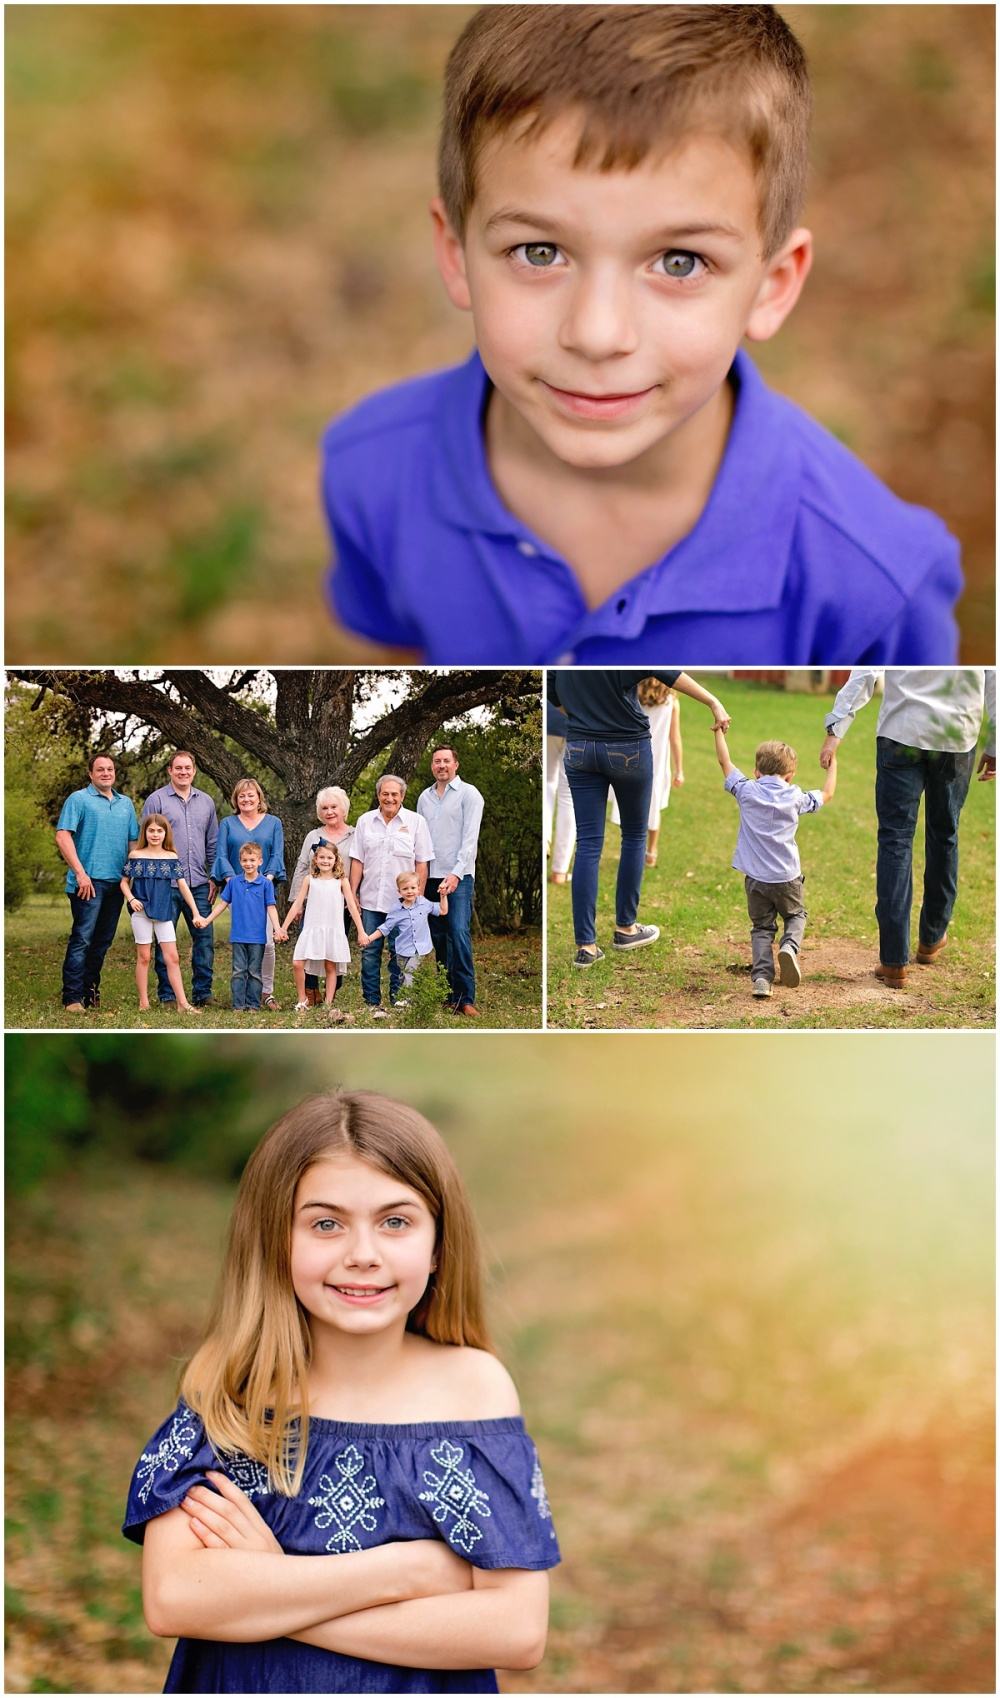 Family-Portraits-Classen-New-Braunels-Ranch-Carly-Barton-Photography_0042.jpg